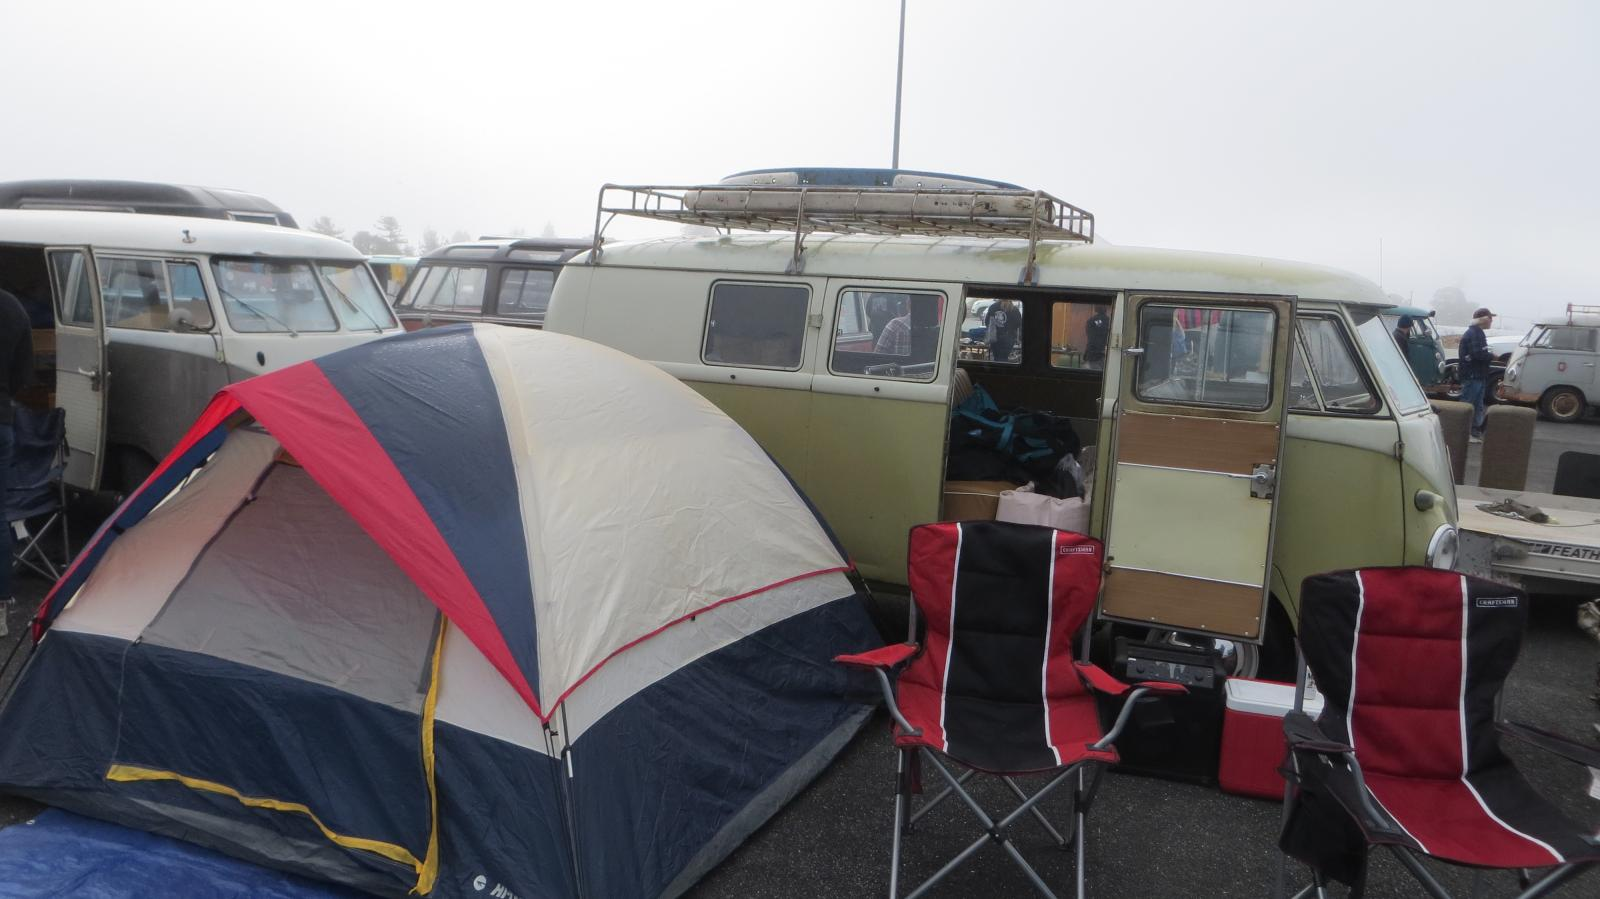 Split Bus Photos from Red Barn 2019 (Sat. April 13th, 2019)